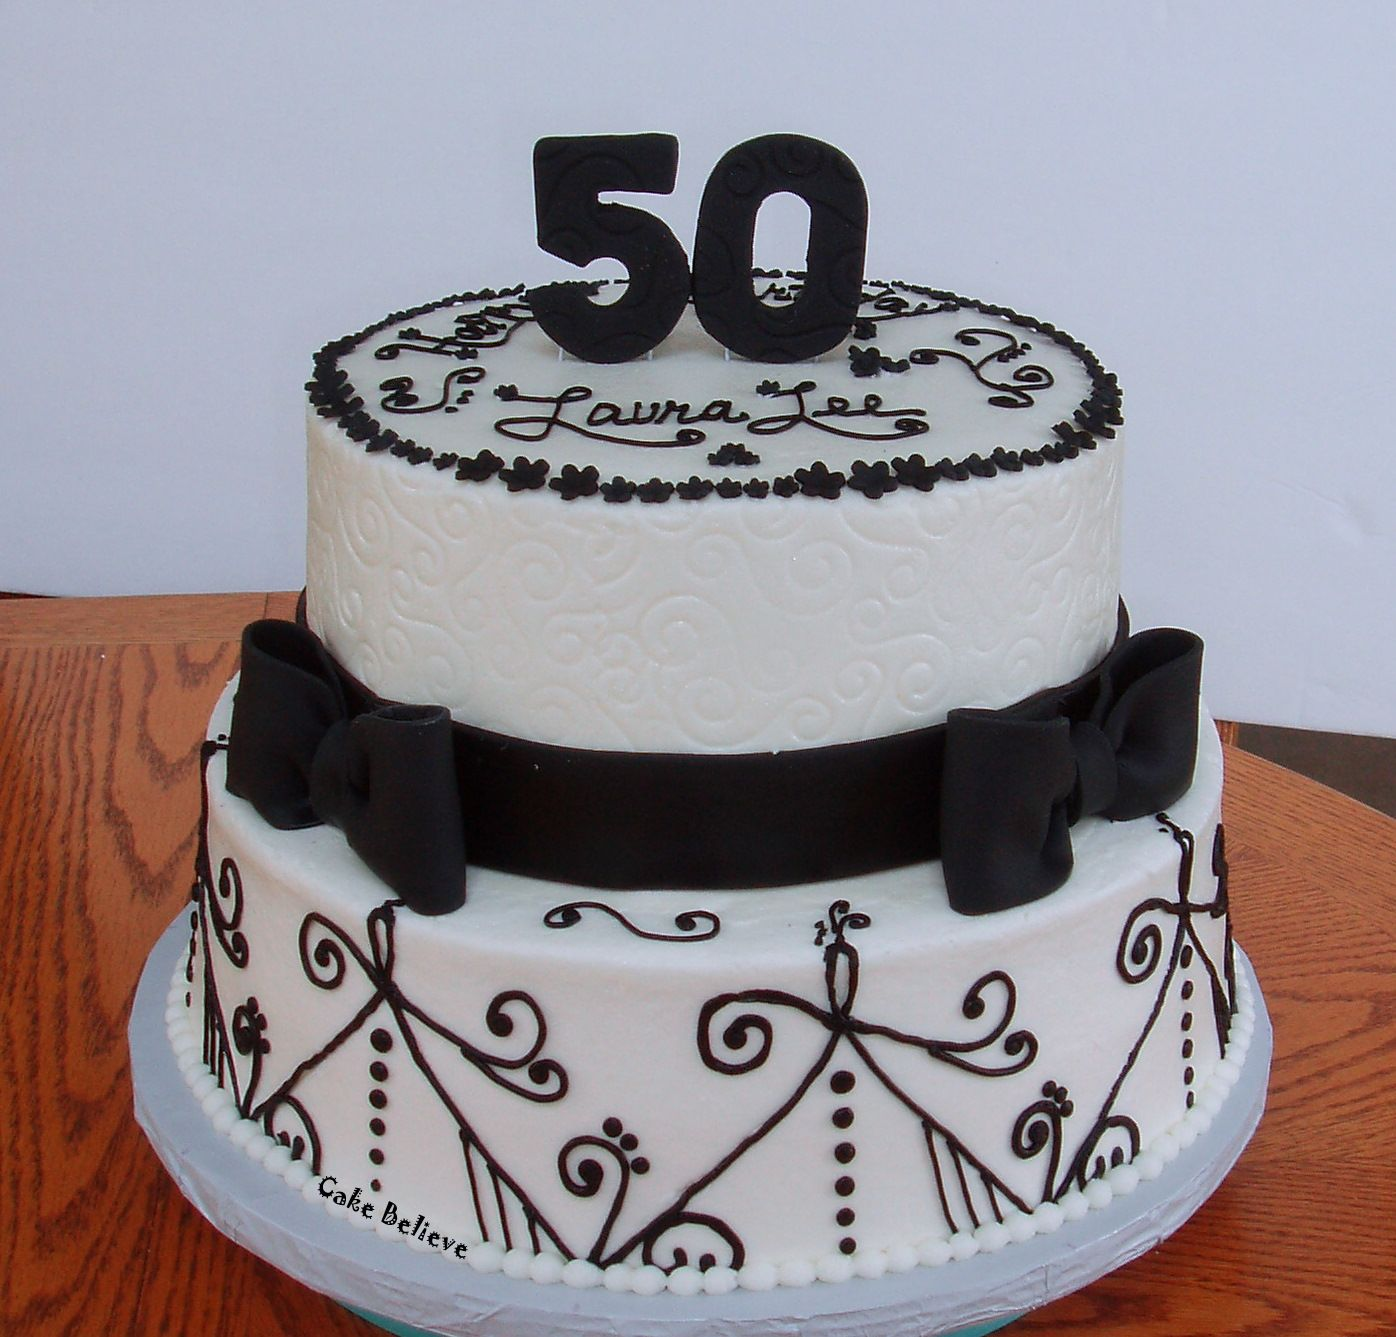 Surprising 50Th Birthday Cake In Black And White Coloring With Unique Motif Personalised Birthday Cards Veneteletsinfo